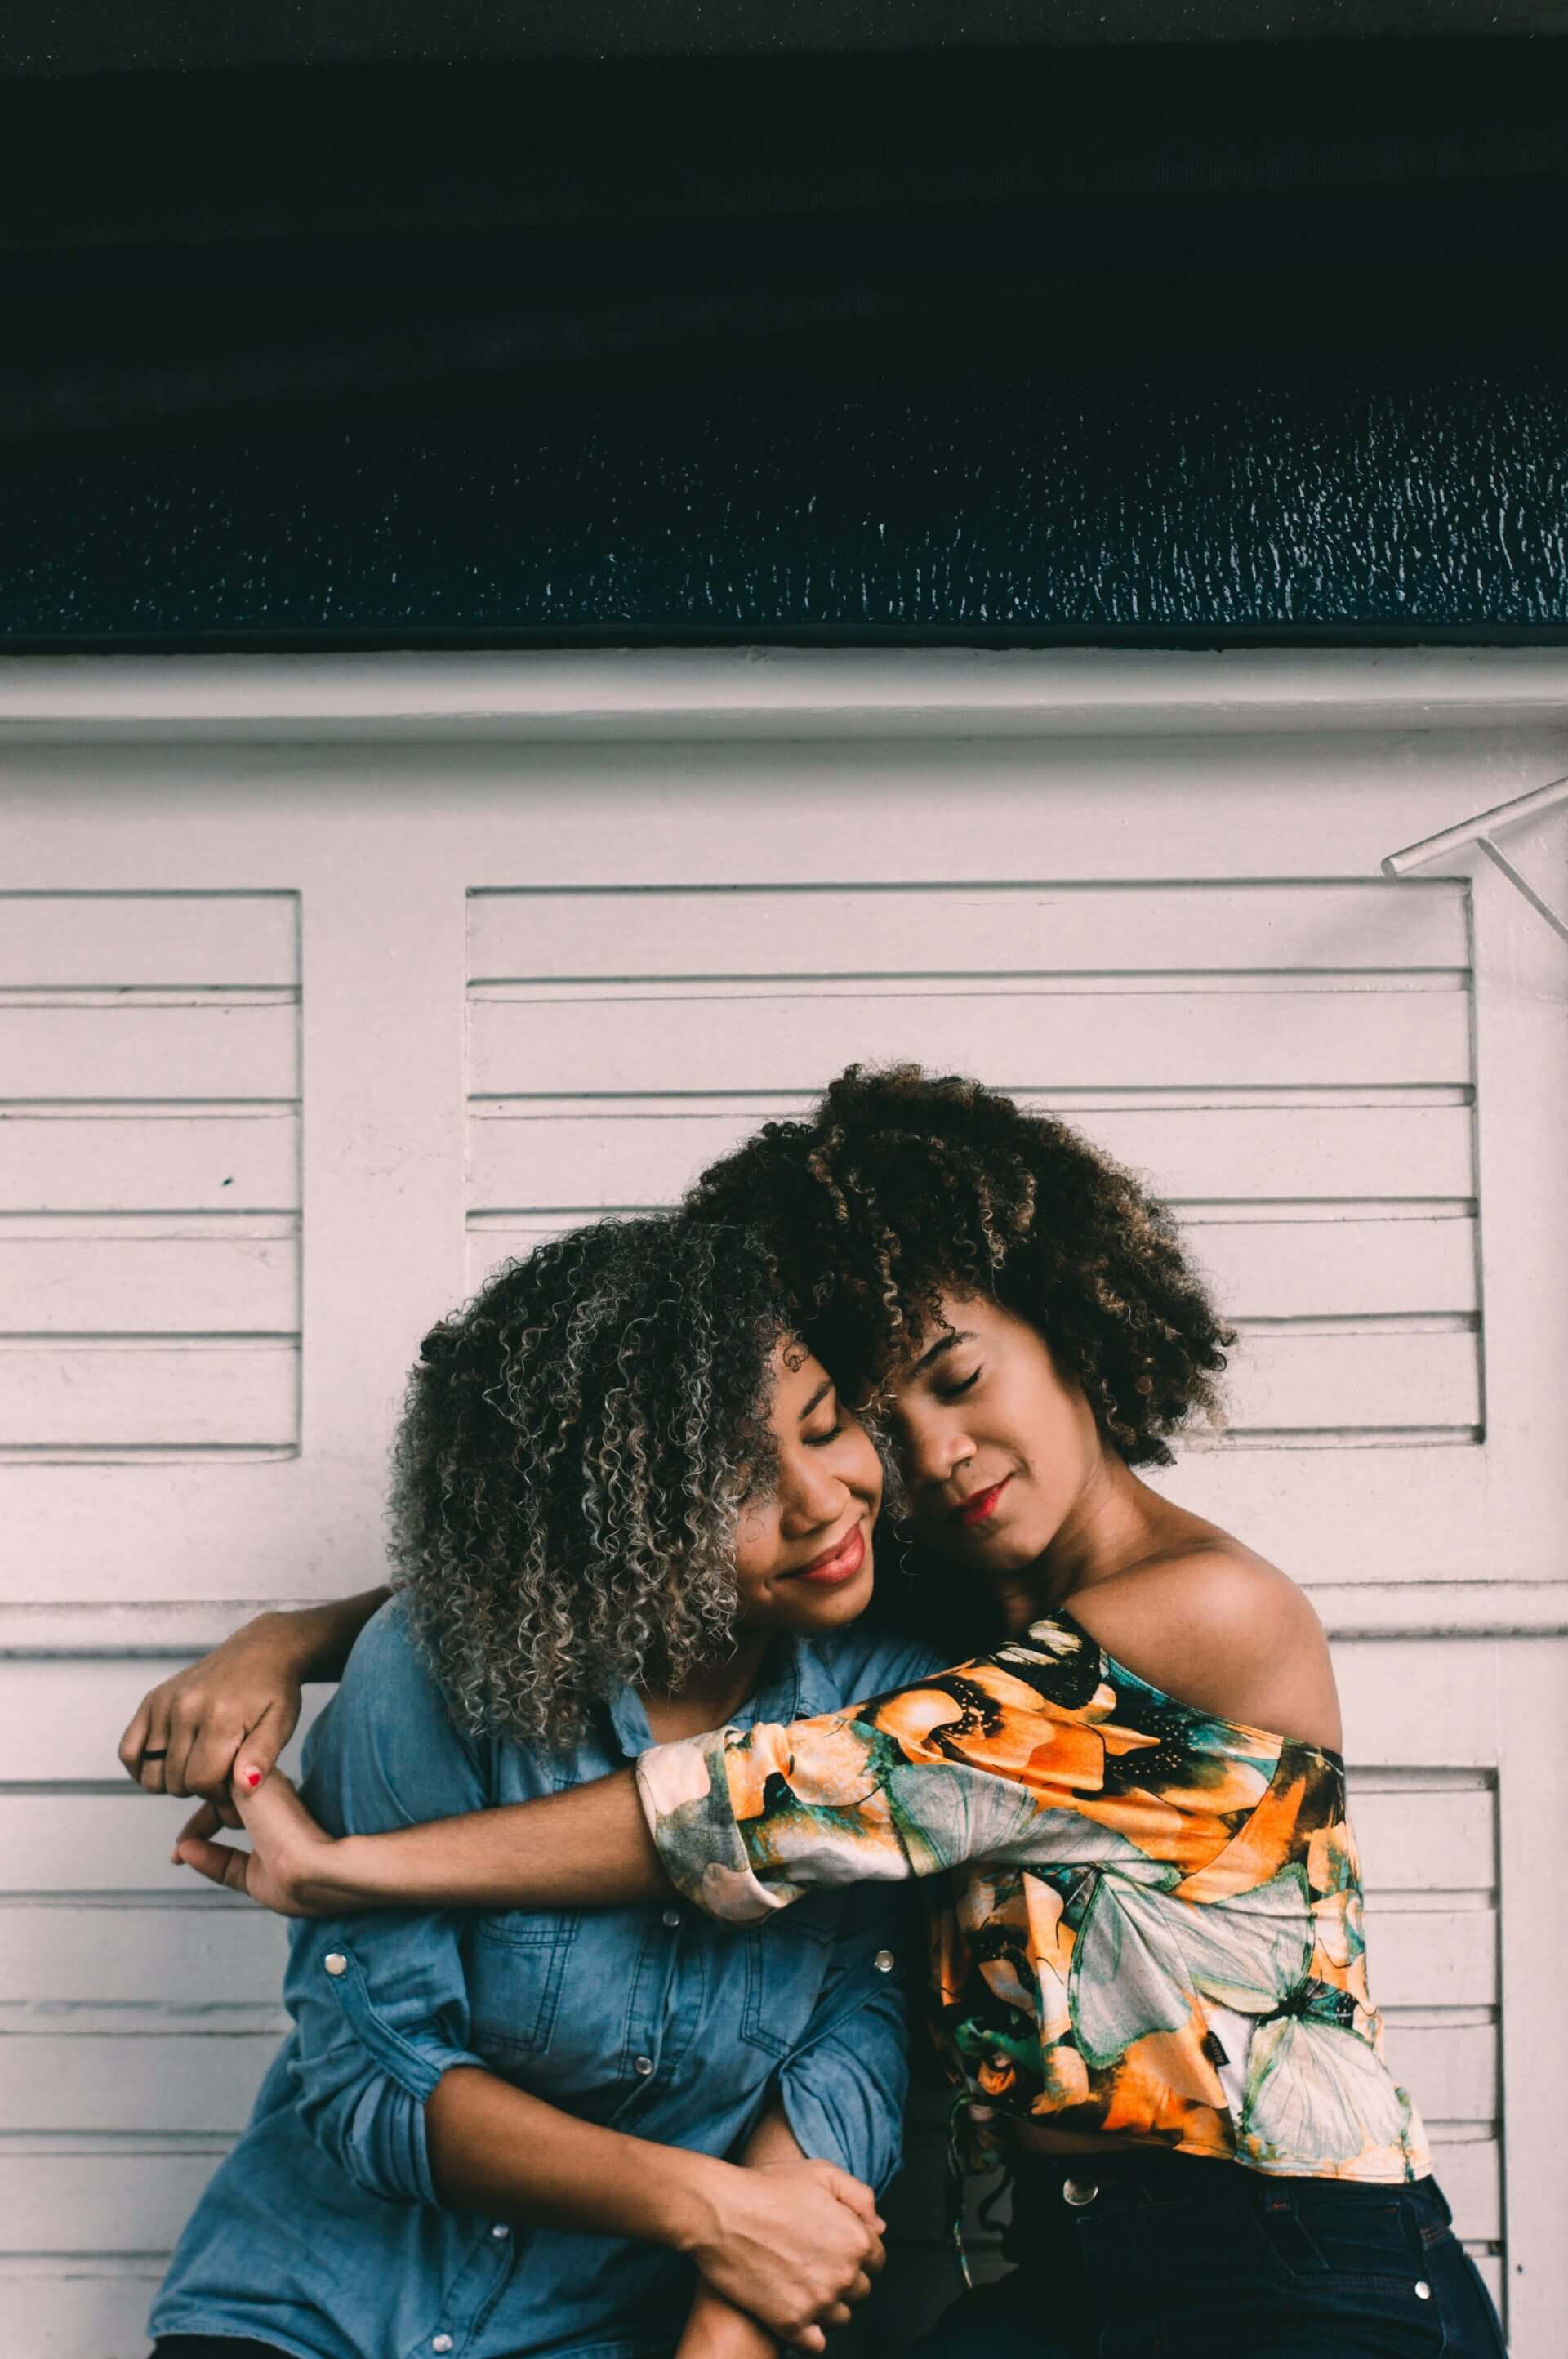 Two black women hugging and displaying gratitude for their friendship